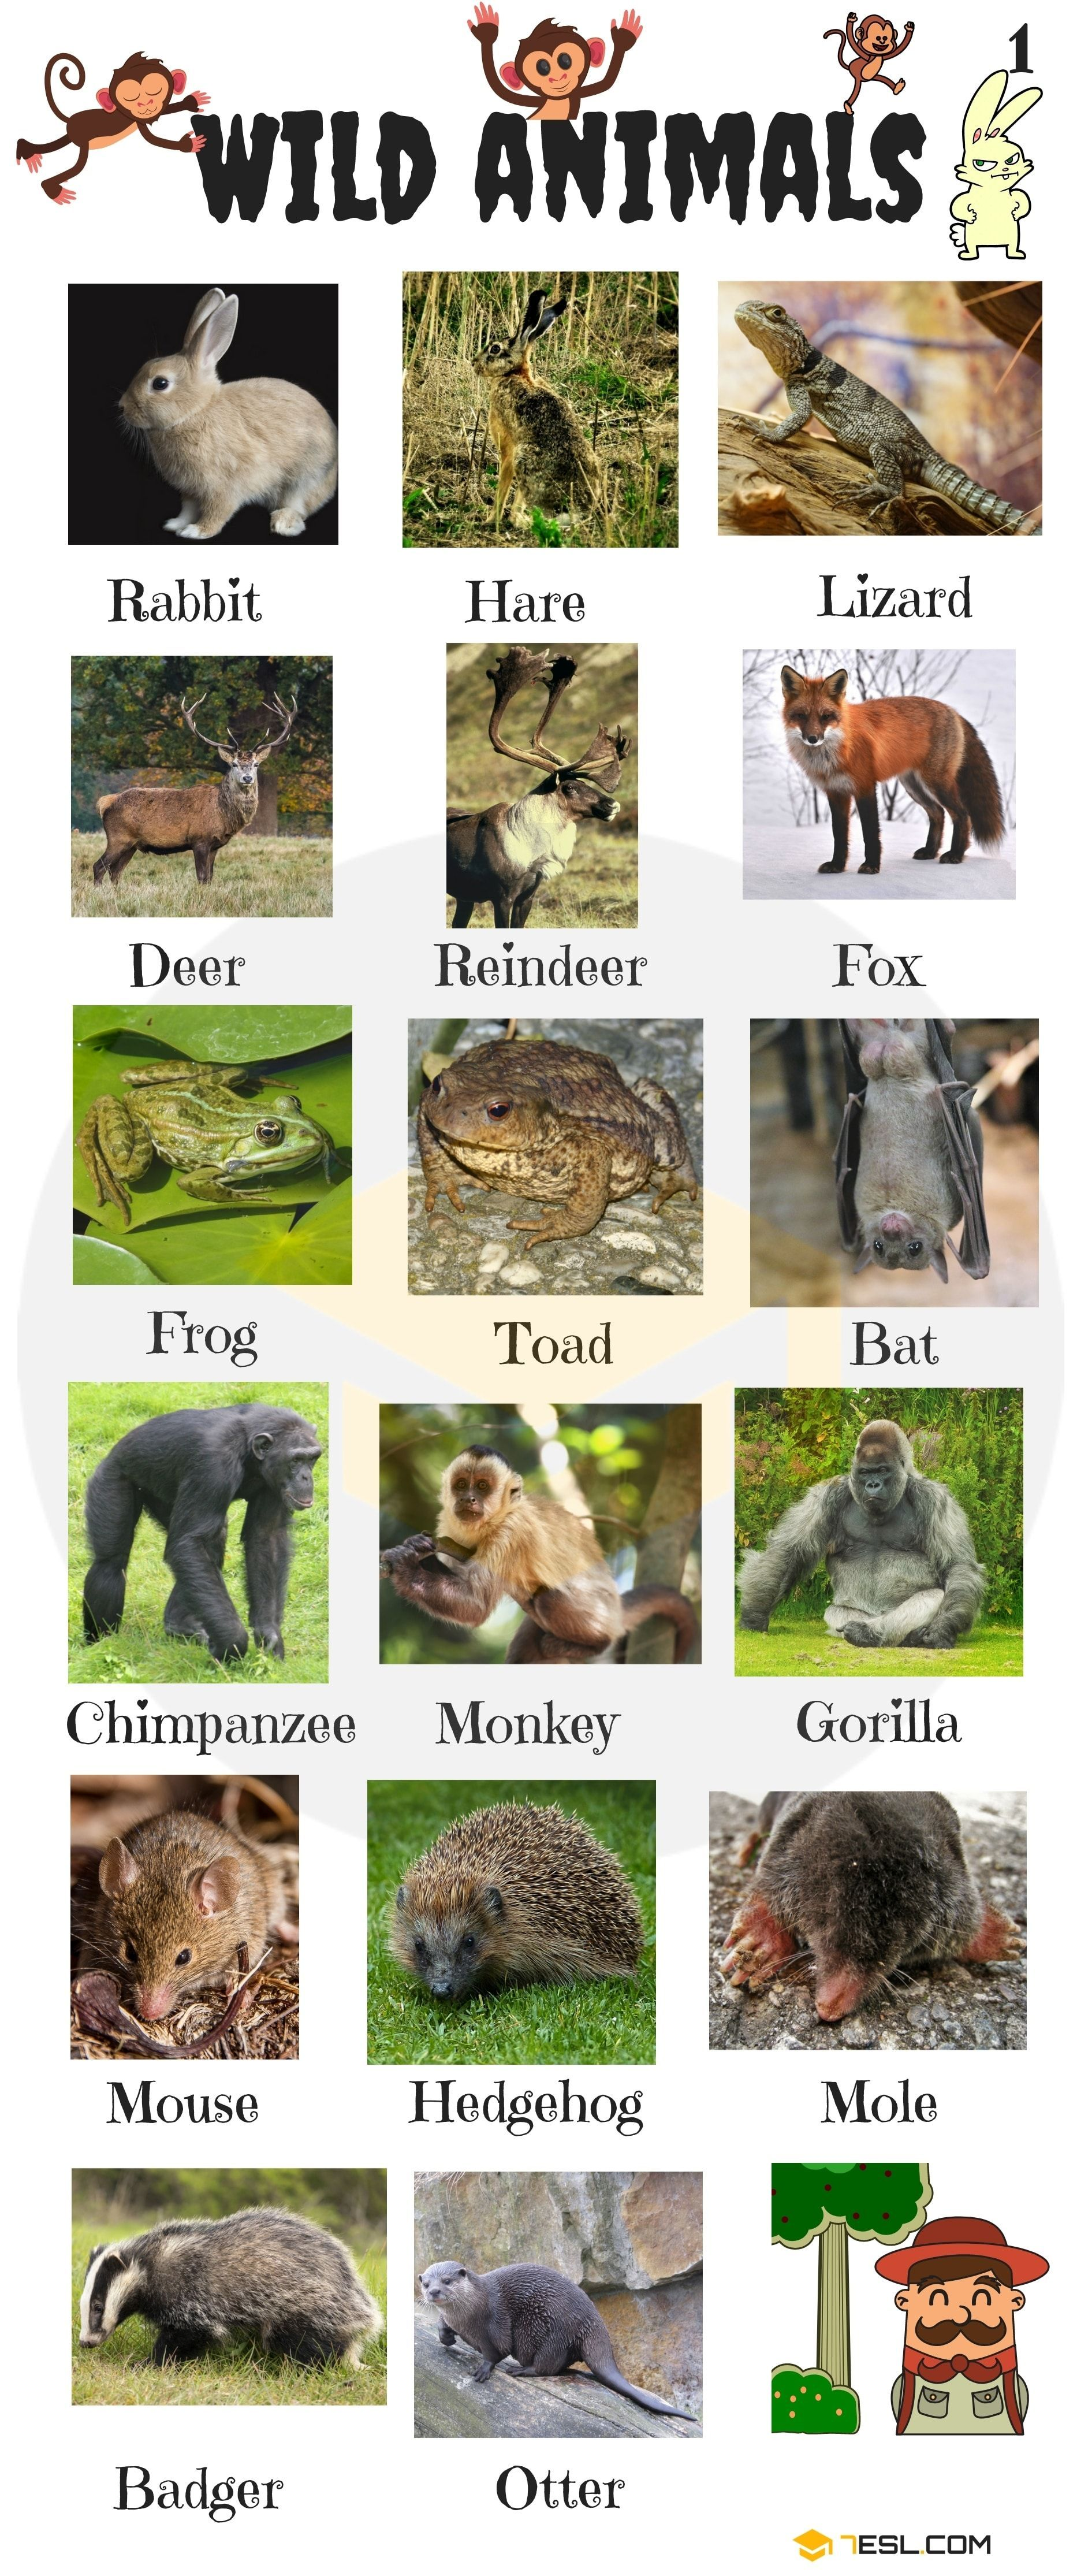 Animal Names Types Of Animals With List Pictures Wildanimals Animals Vocabulary In English Learn A Wild Animals List Animals Wild Animals Name In English